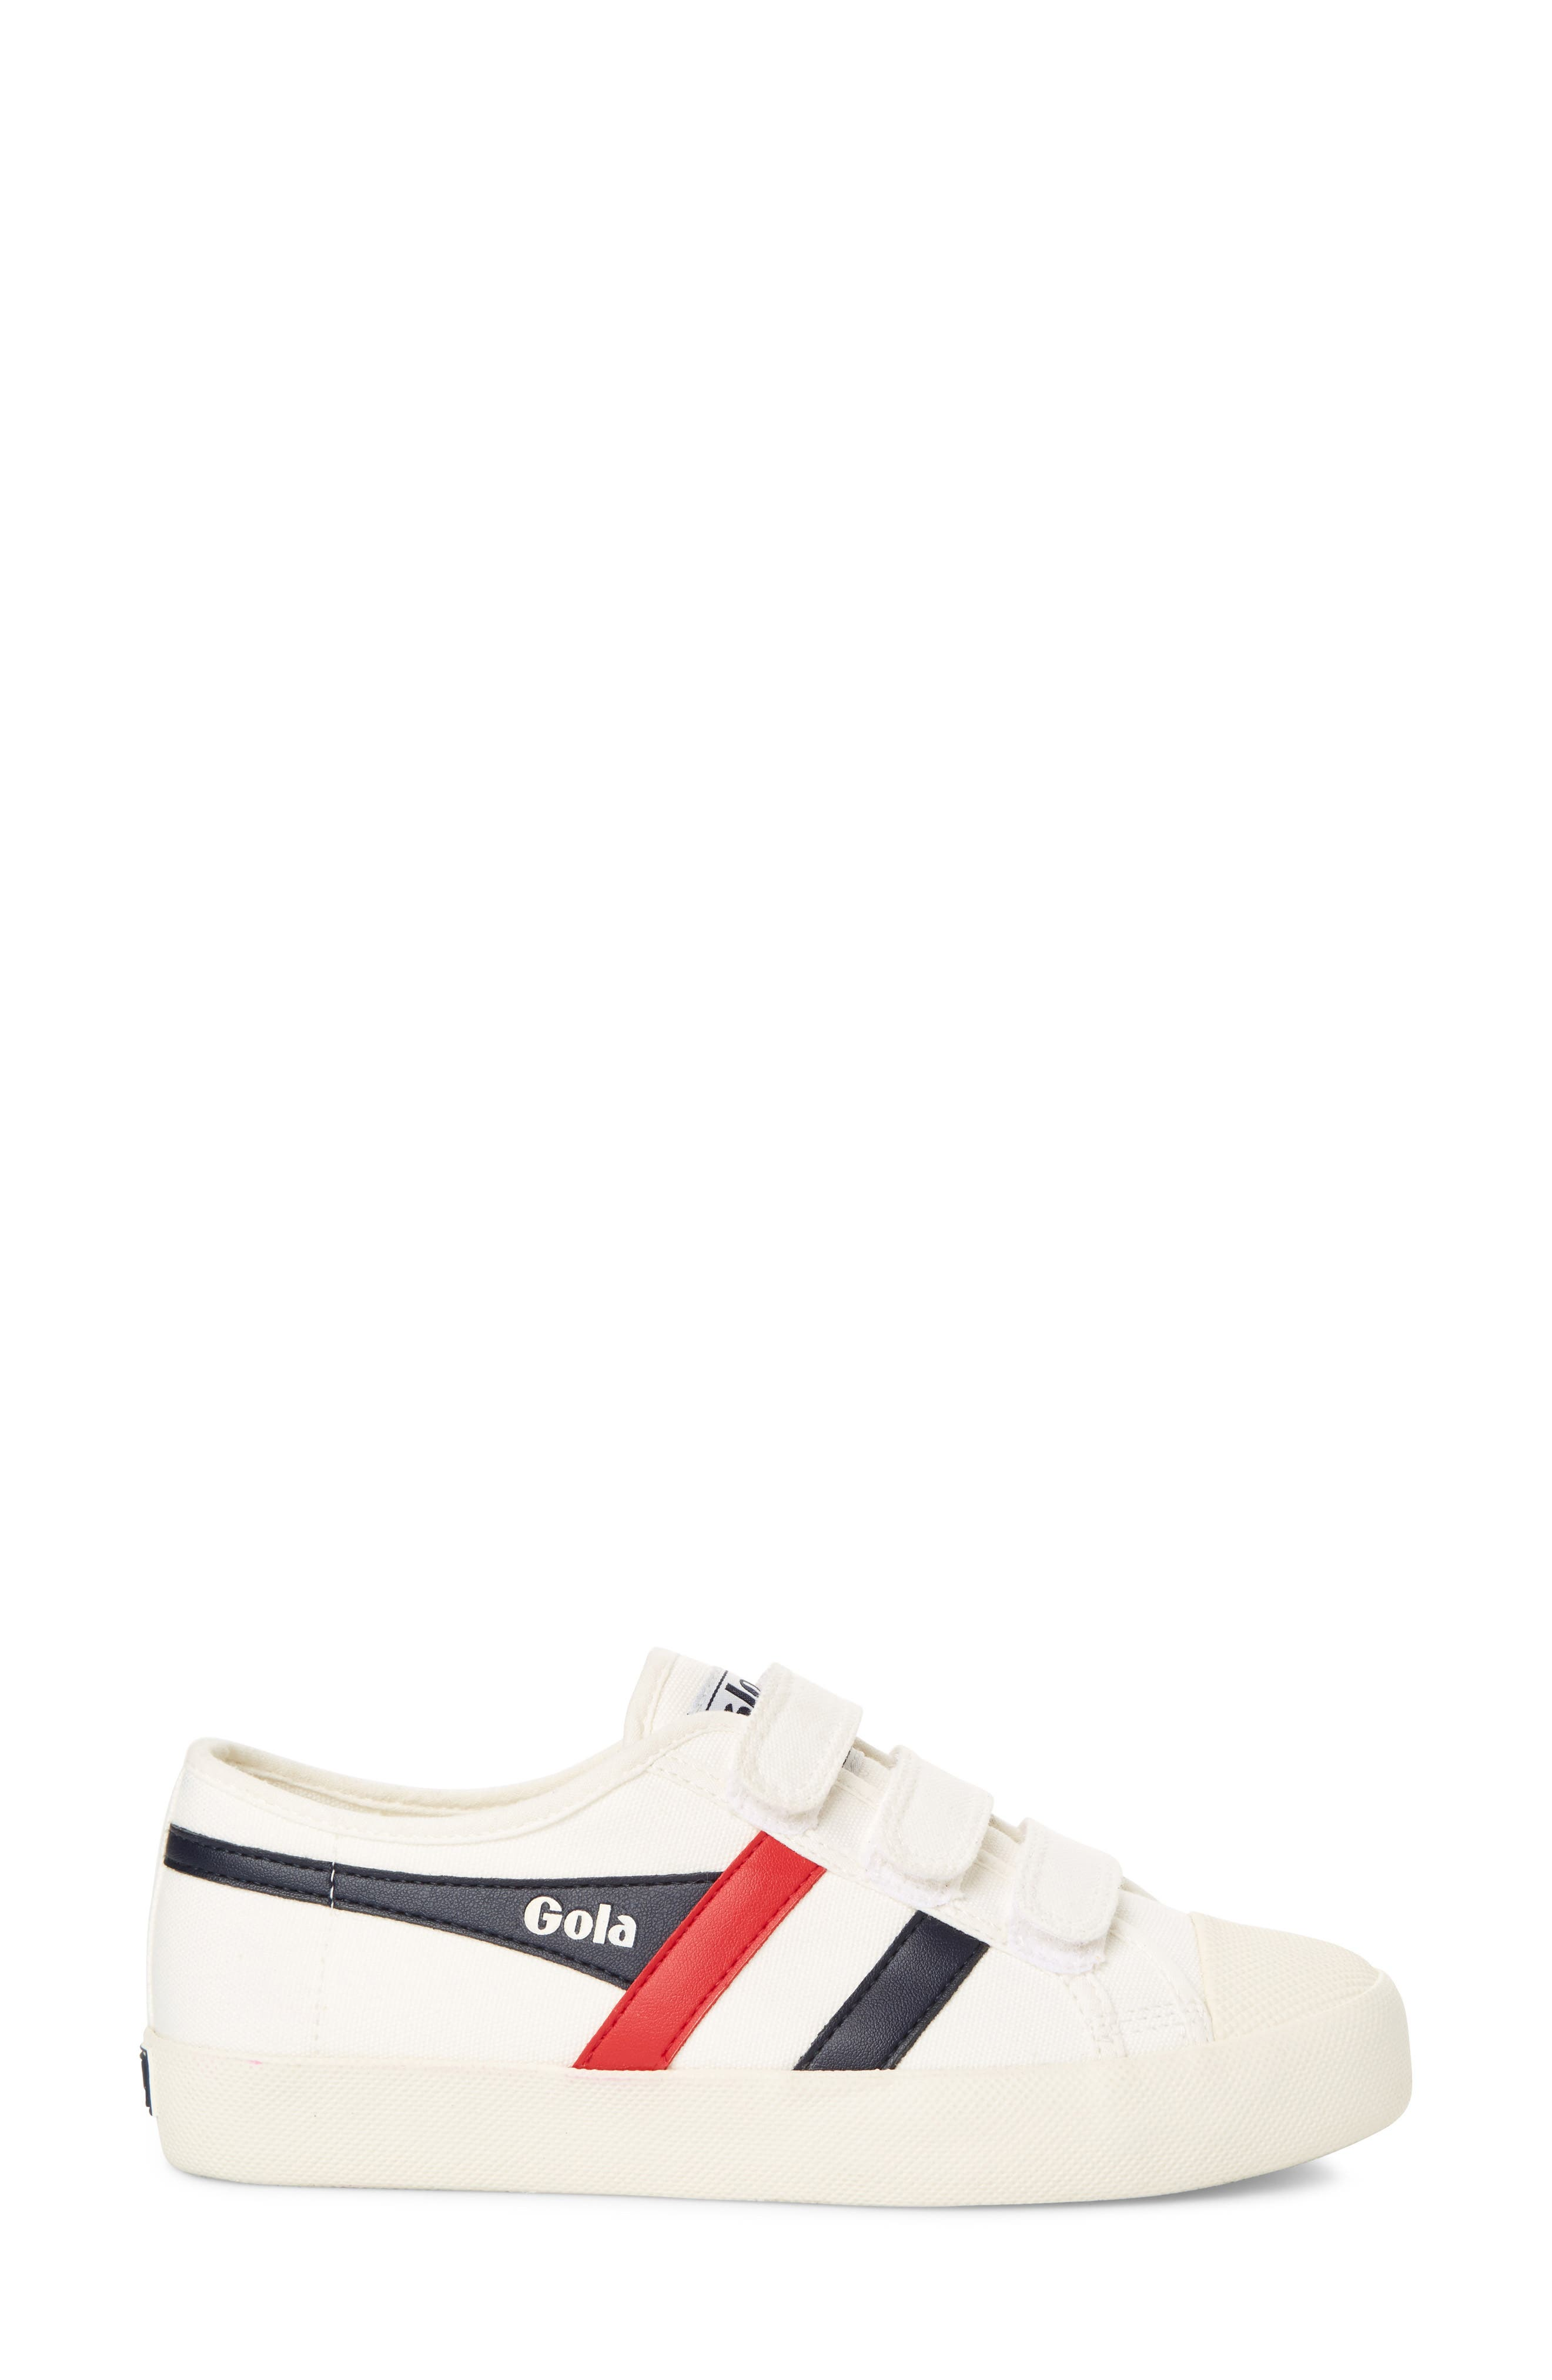 Coaster Low Top Sneaker,                             Alternate thumbnail 3, color,                             OFF WHITE/ NAVY/ RED